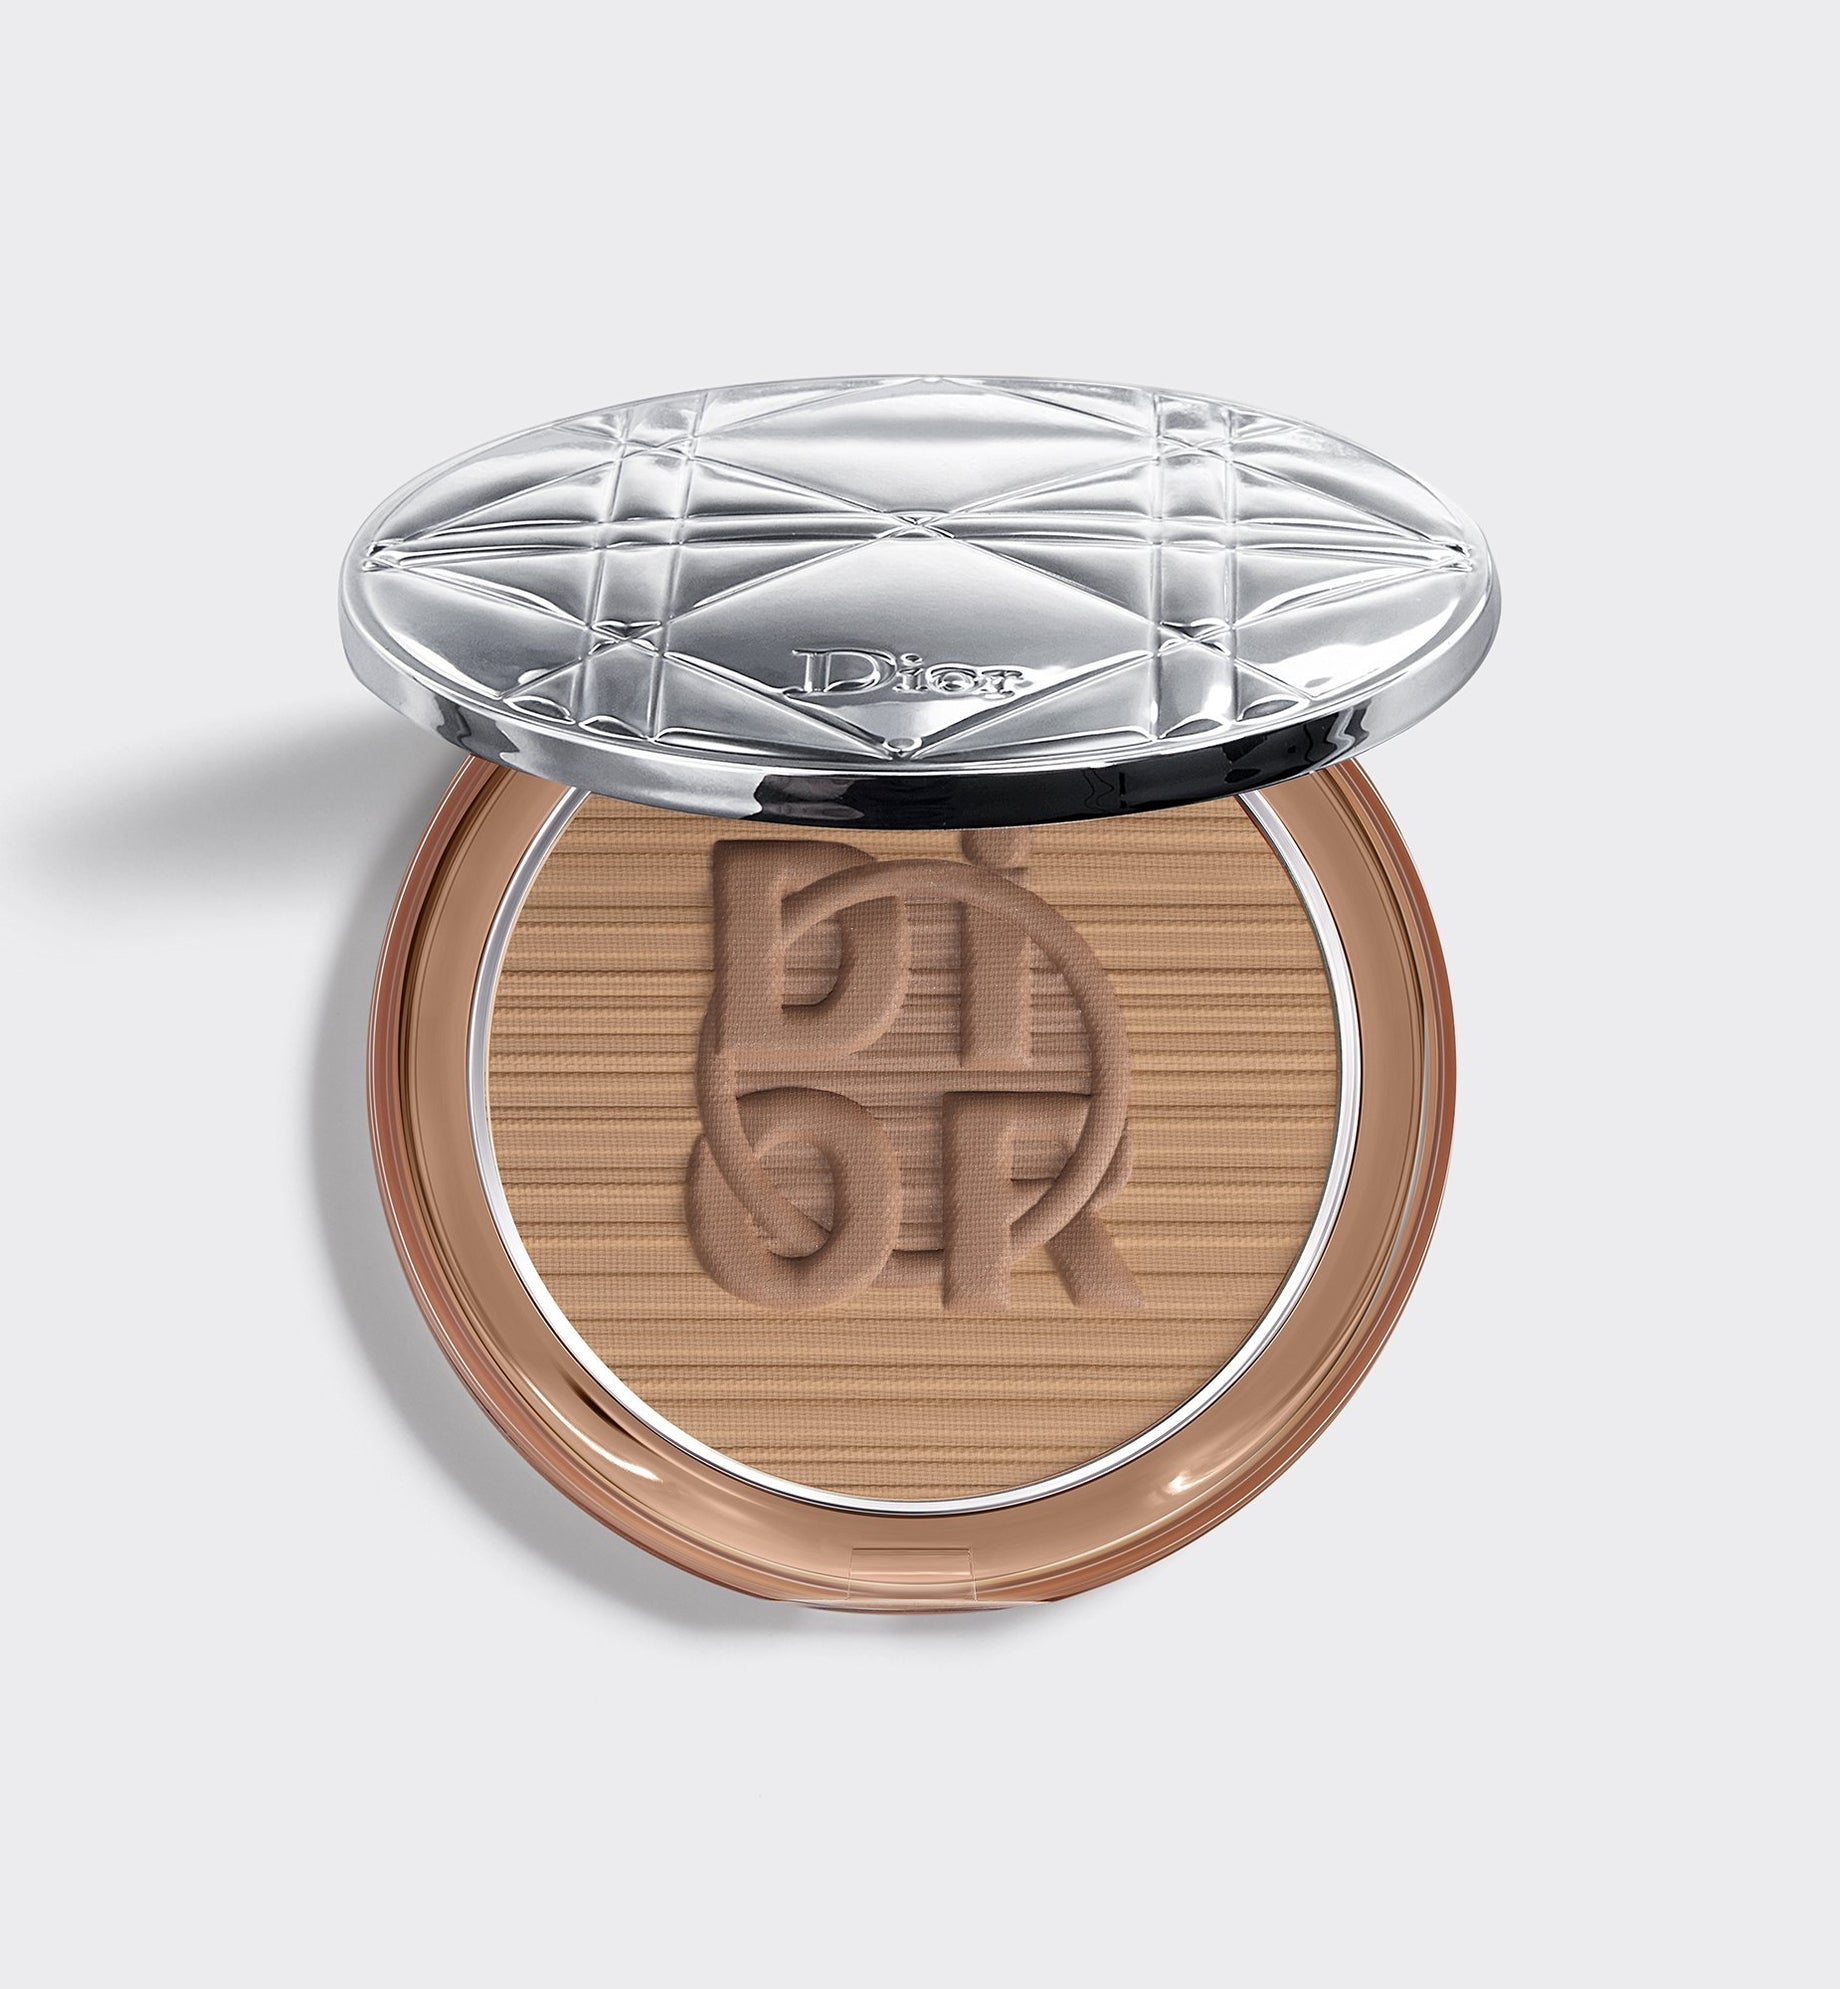 DIORSKIN MINERAL NUDE BRONZE - COLOR GAMES LIMITED EDITION  BRONZER - HEALTHY GLOW BRONZING POWER